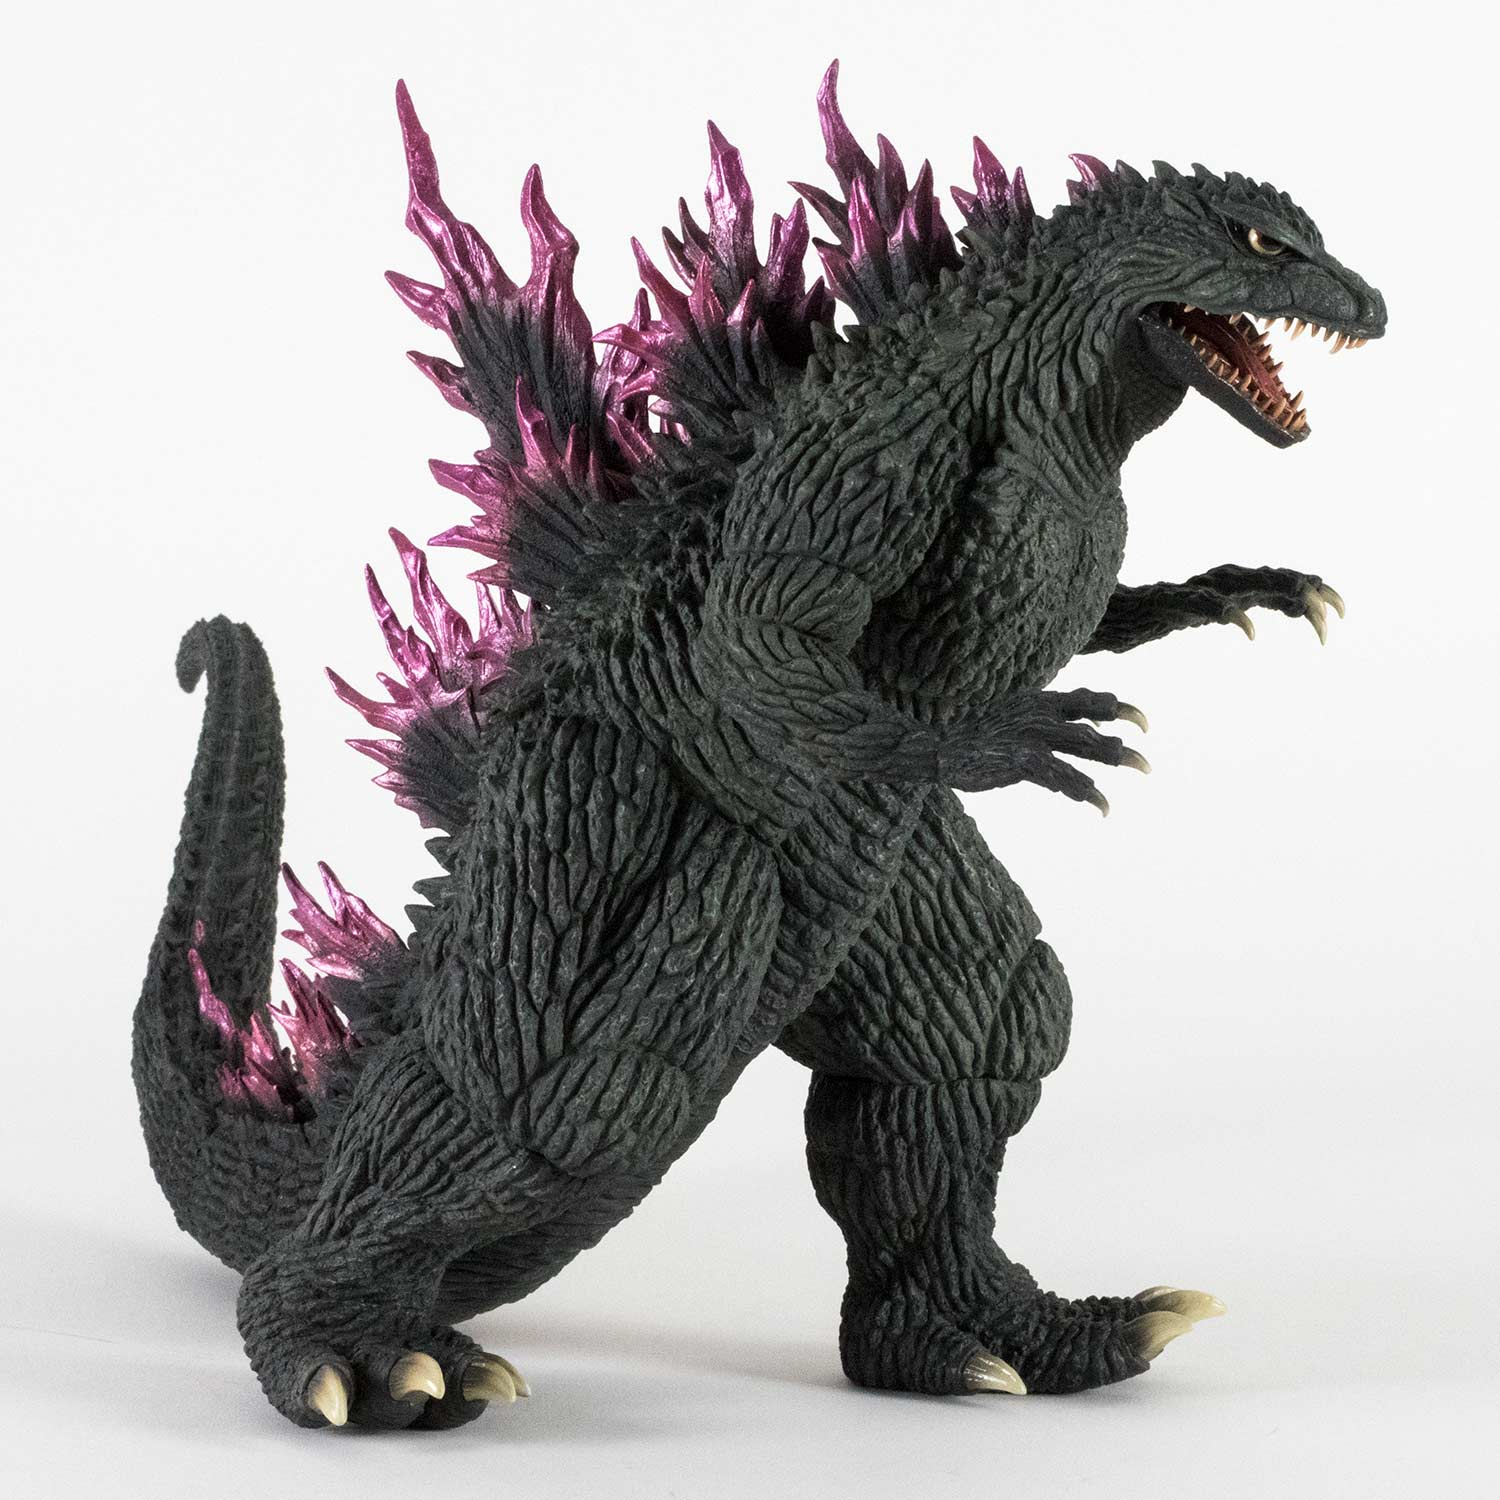 Full Review: X-Plus 12in Series Godzilla 1999 (2000